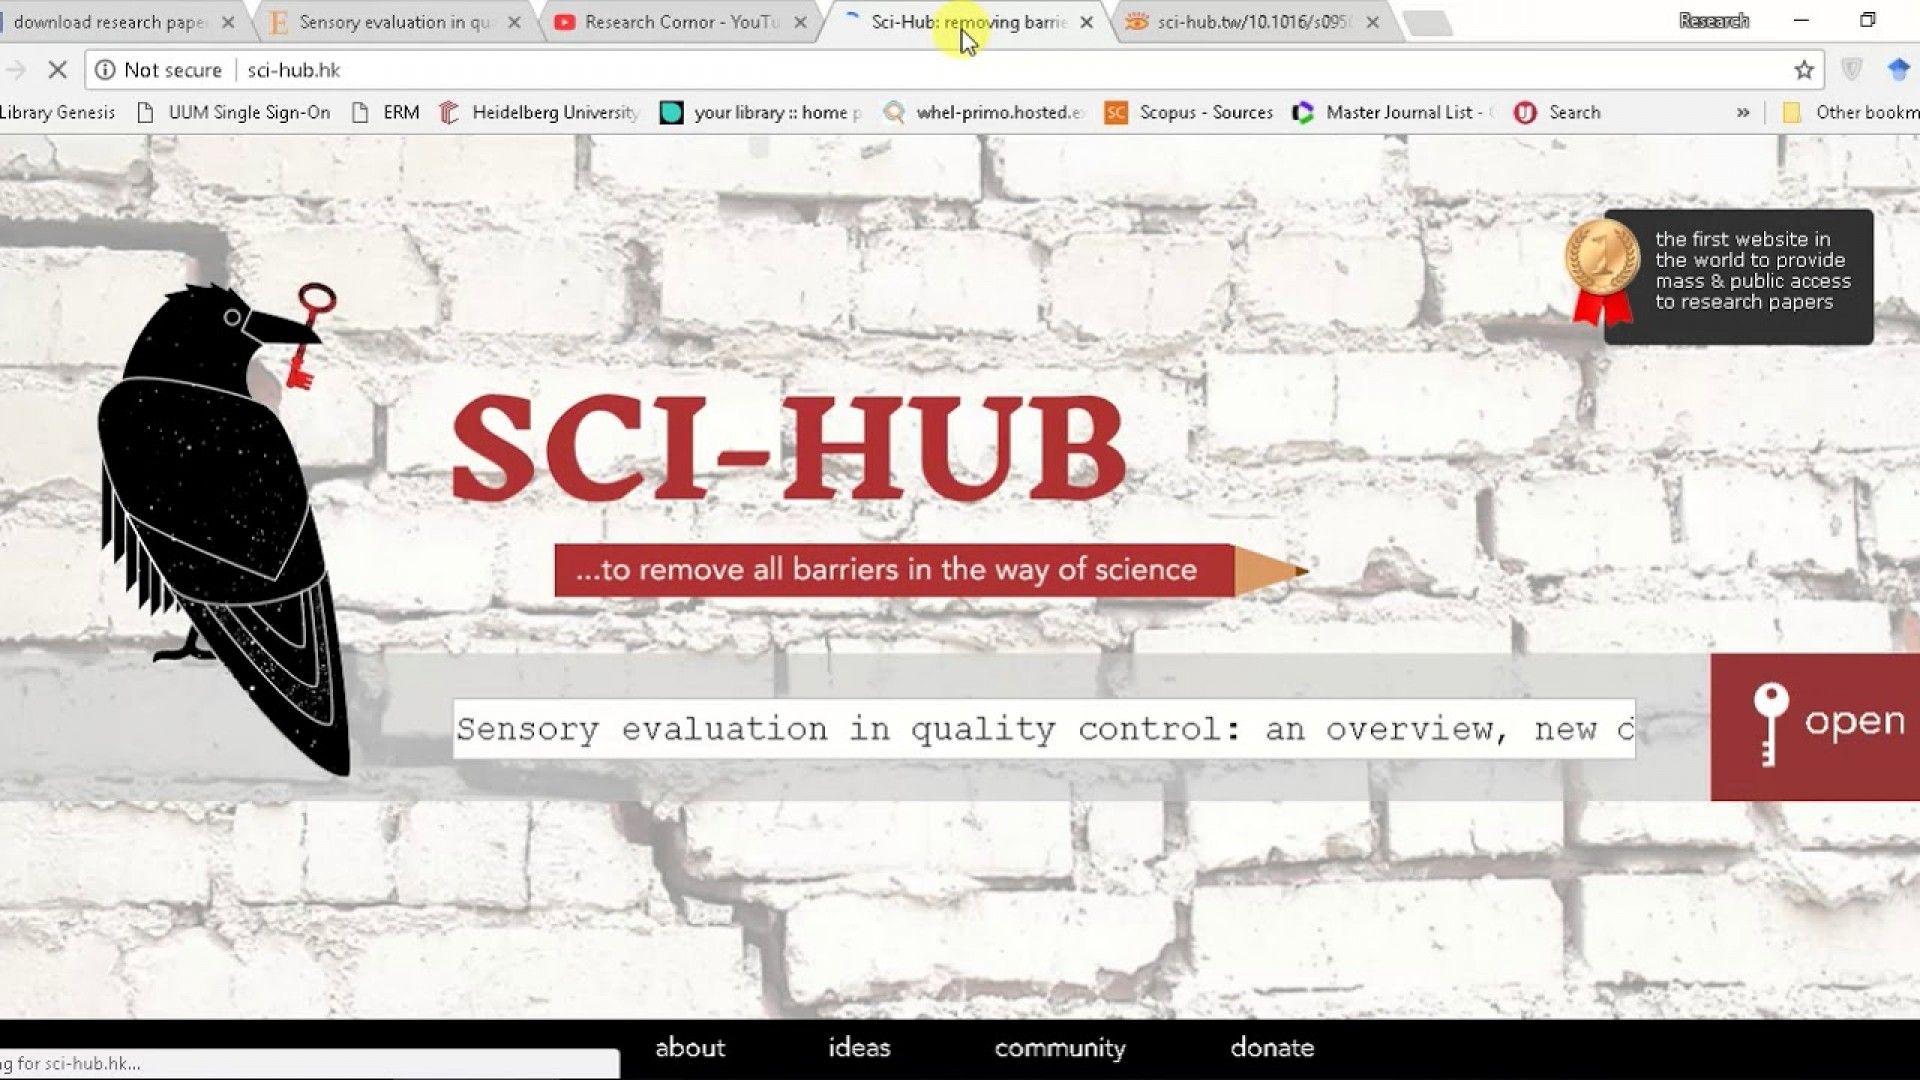 002 Best Site To Download Research Papers Free Paper Unbelievable How From Researchgate Springer Sciencedirect 1920